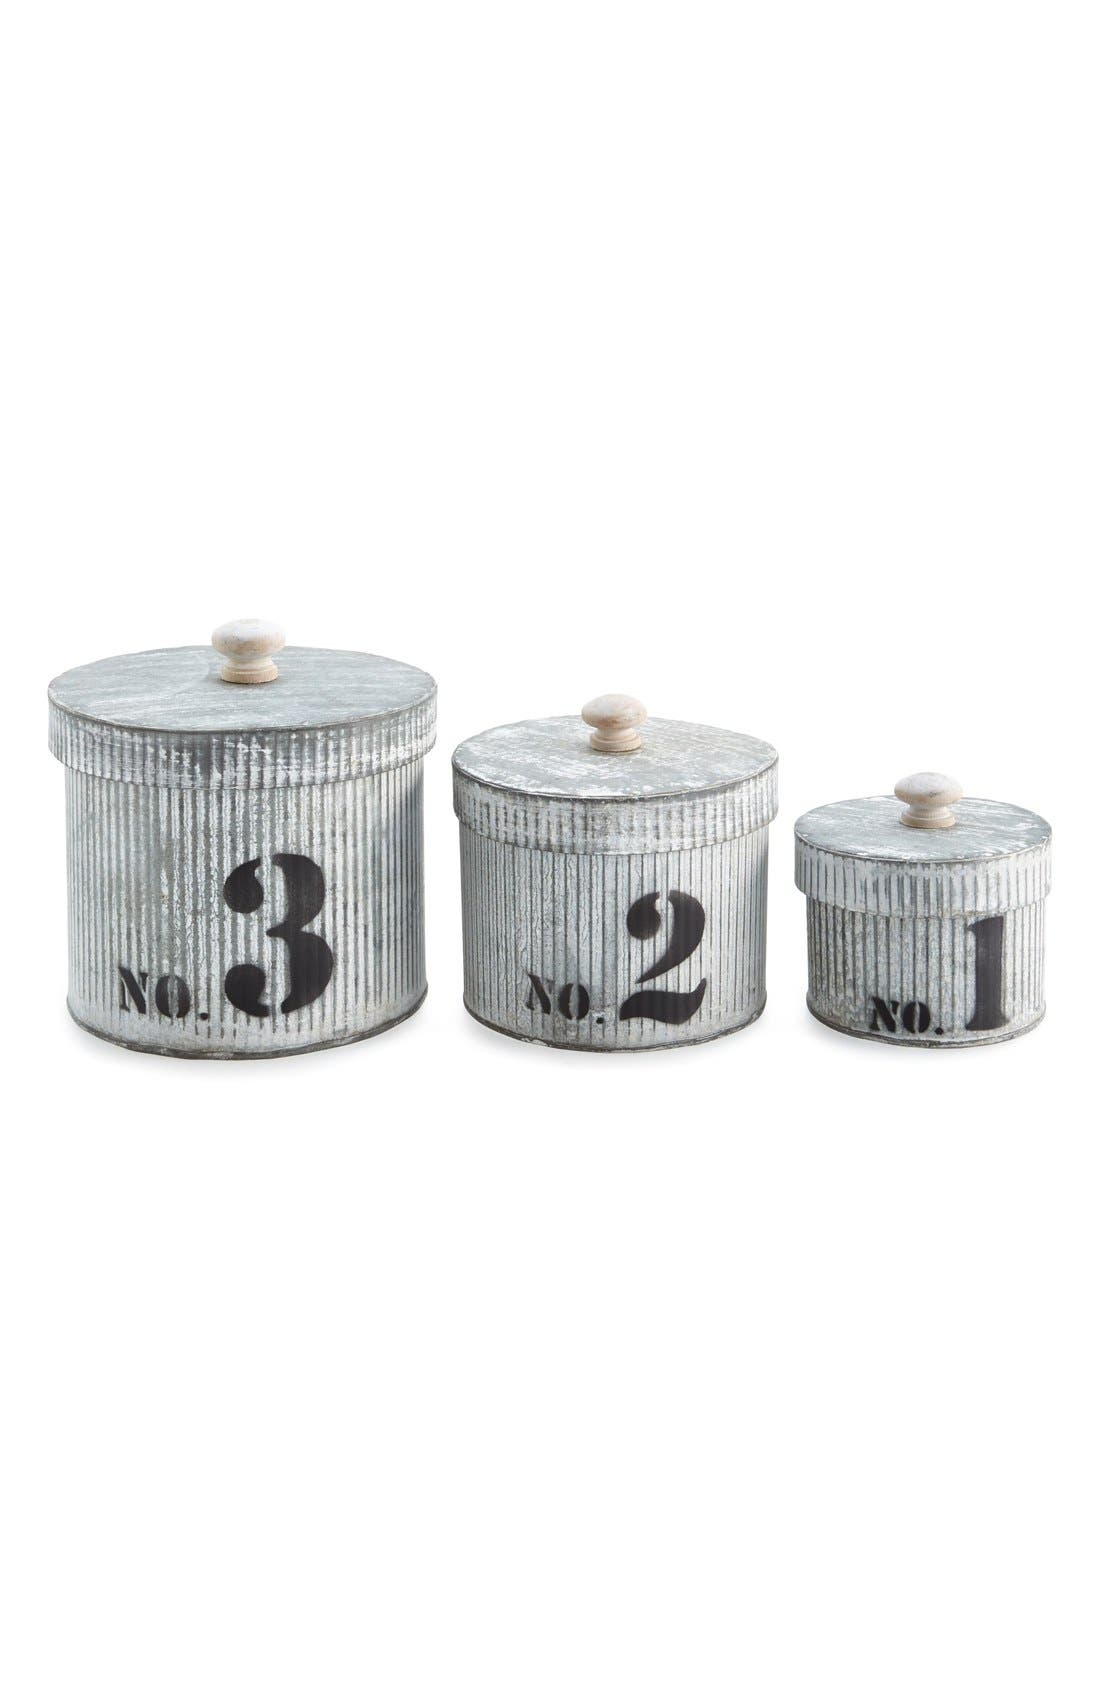 Alternate Image 1 Selected - Oré Originals Galvanized Metal Bins (Set of 3)